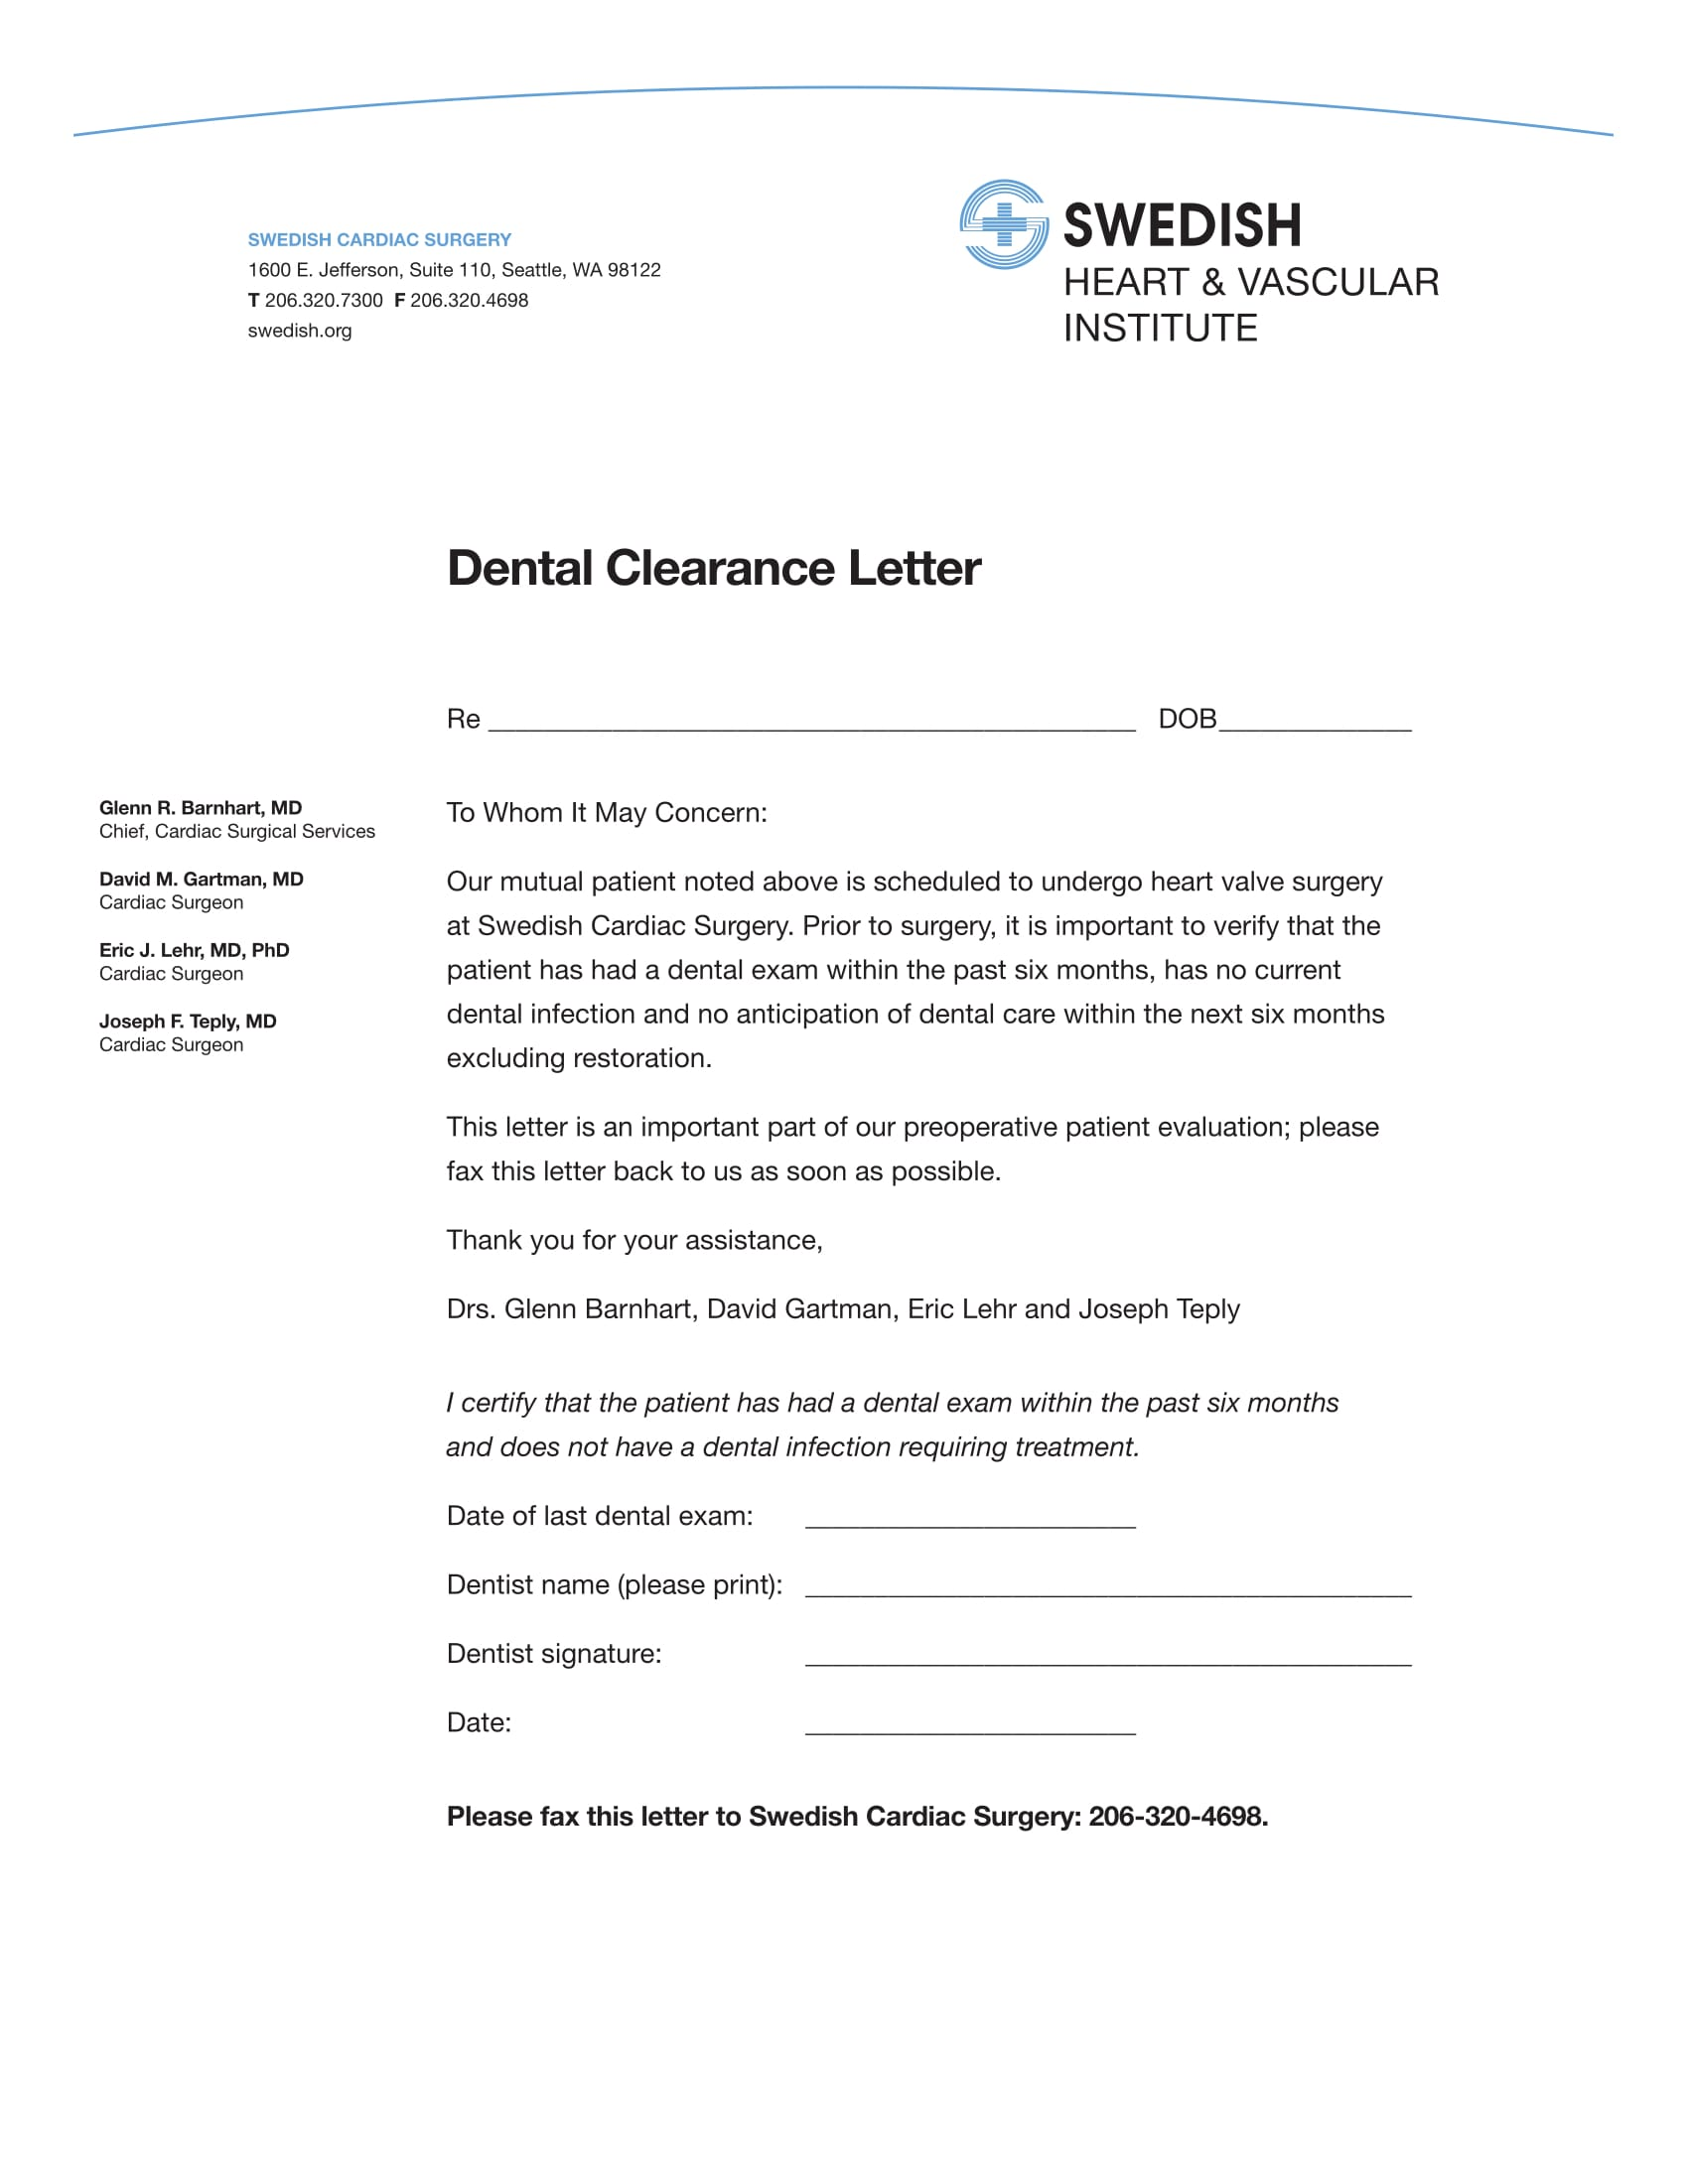 dental clearance letter for surgery sample 14  Dental Medical Clearance Forms - Free Word, PDF Format Download